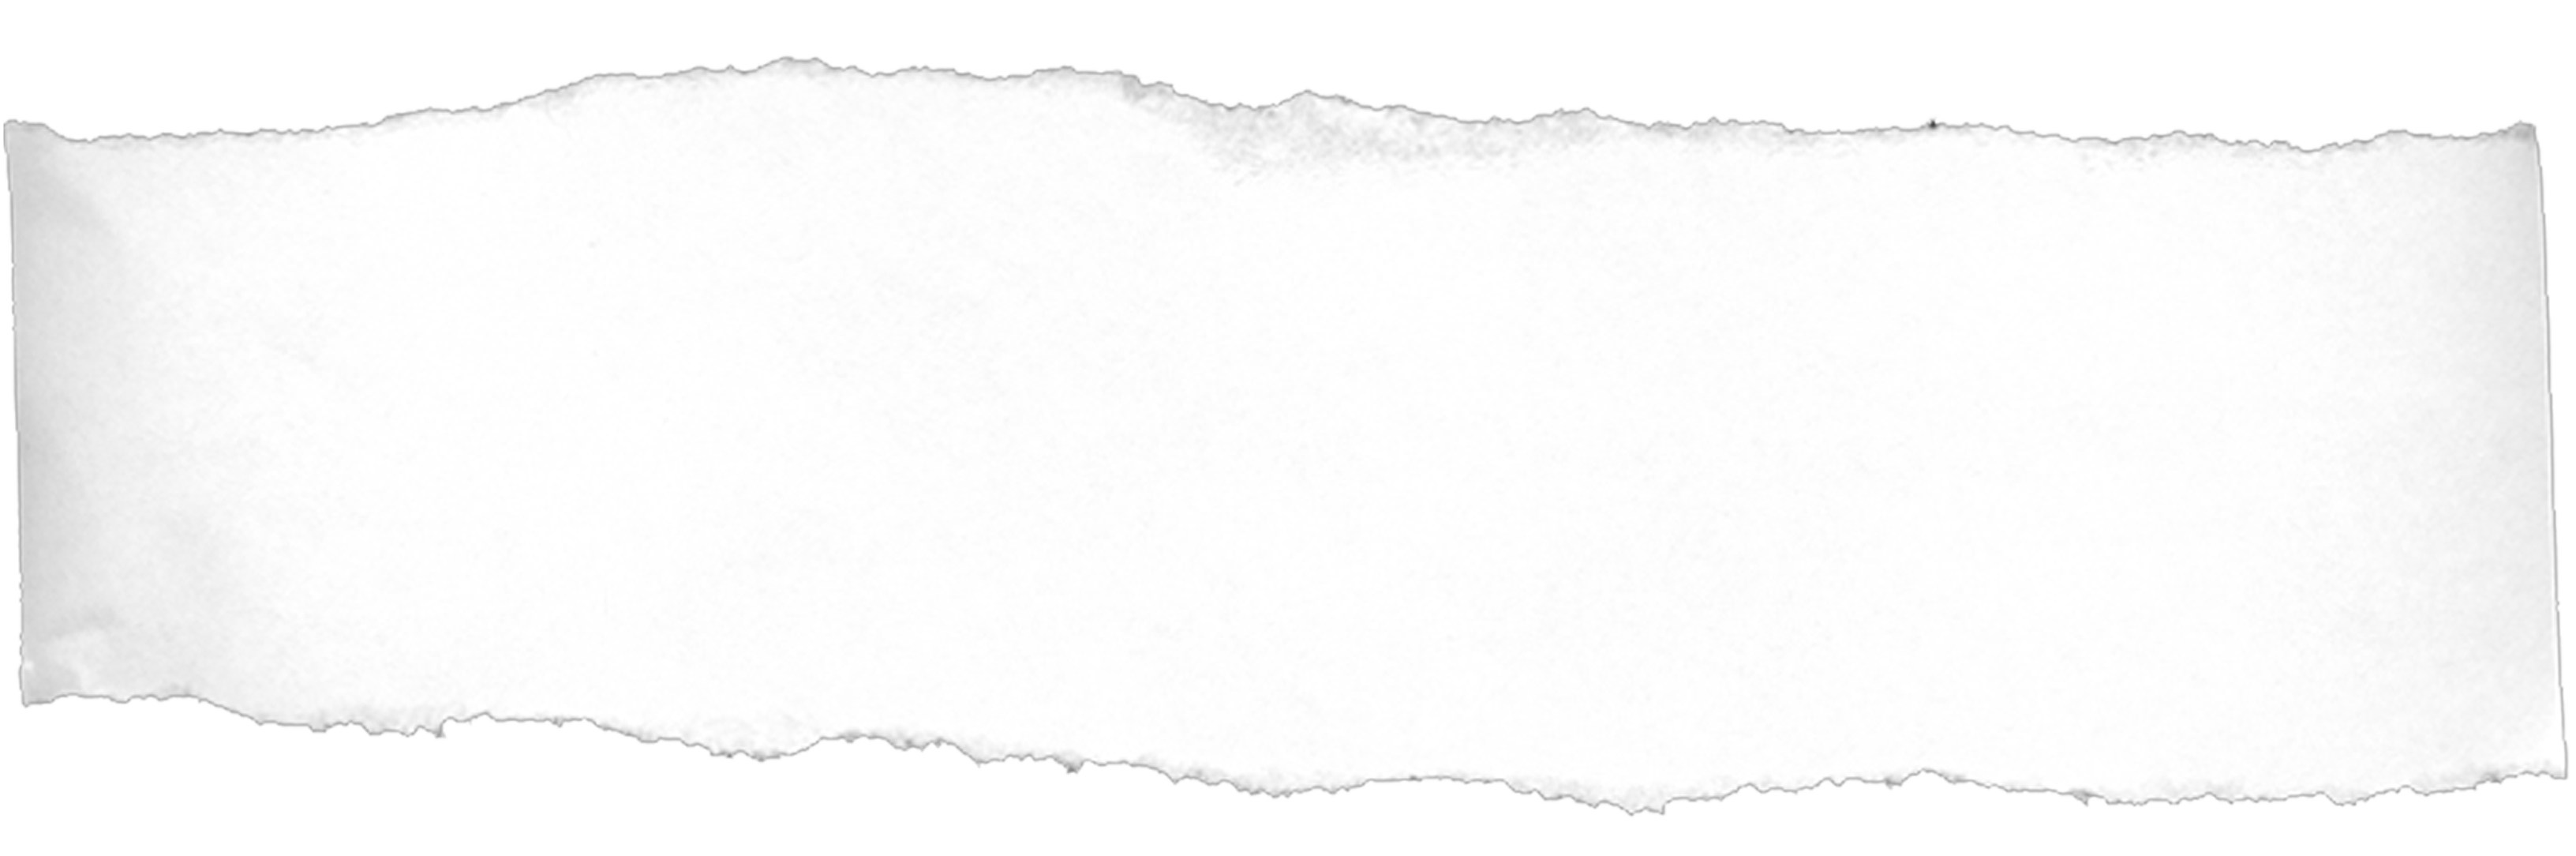 Ripped paper torn. Clipart free download best